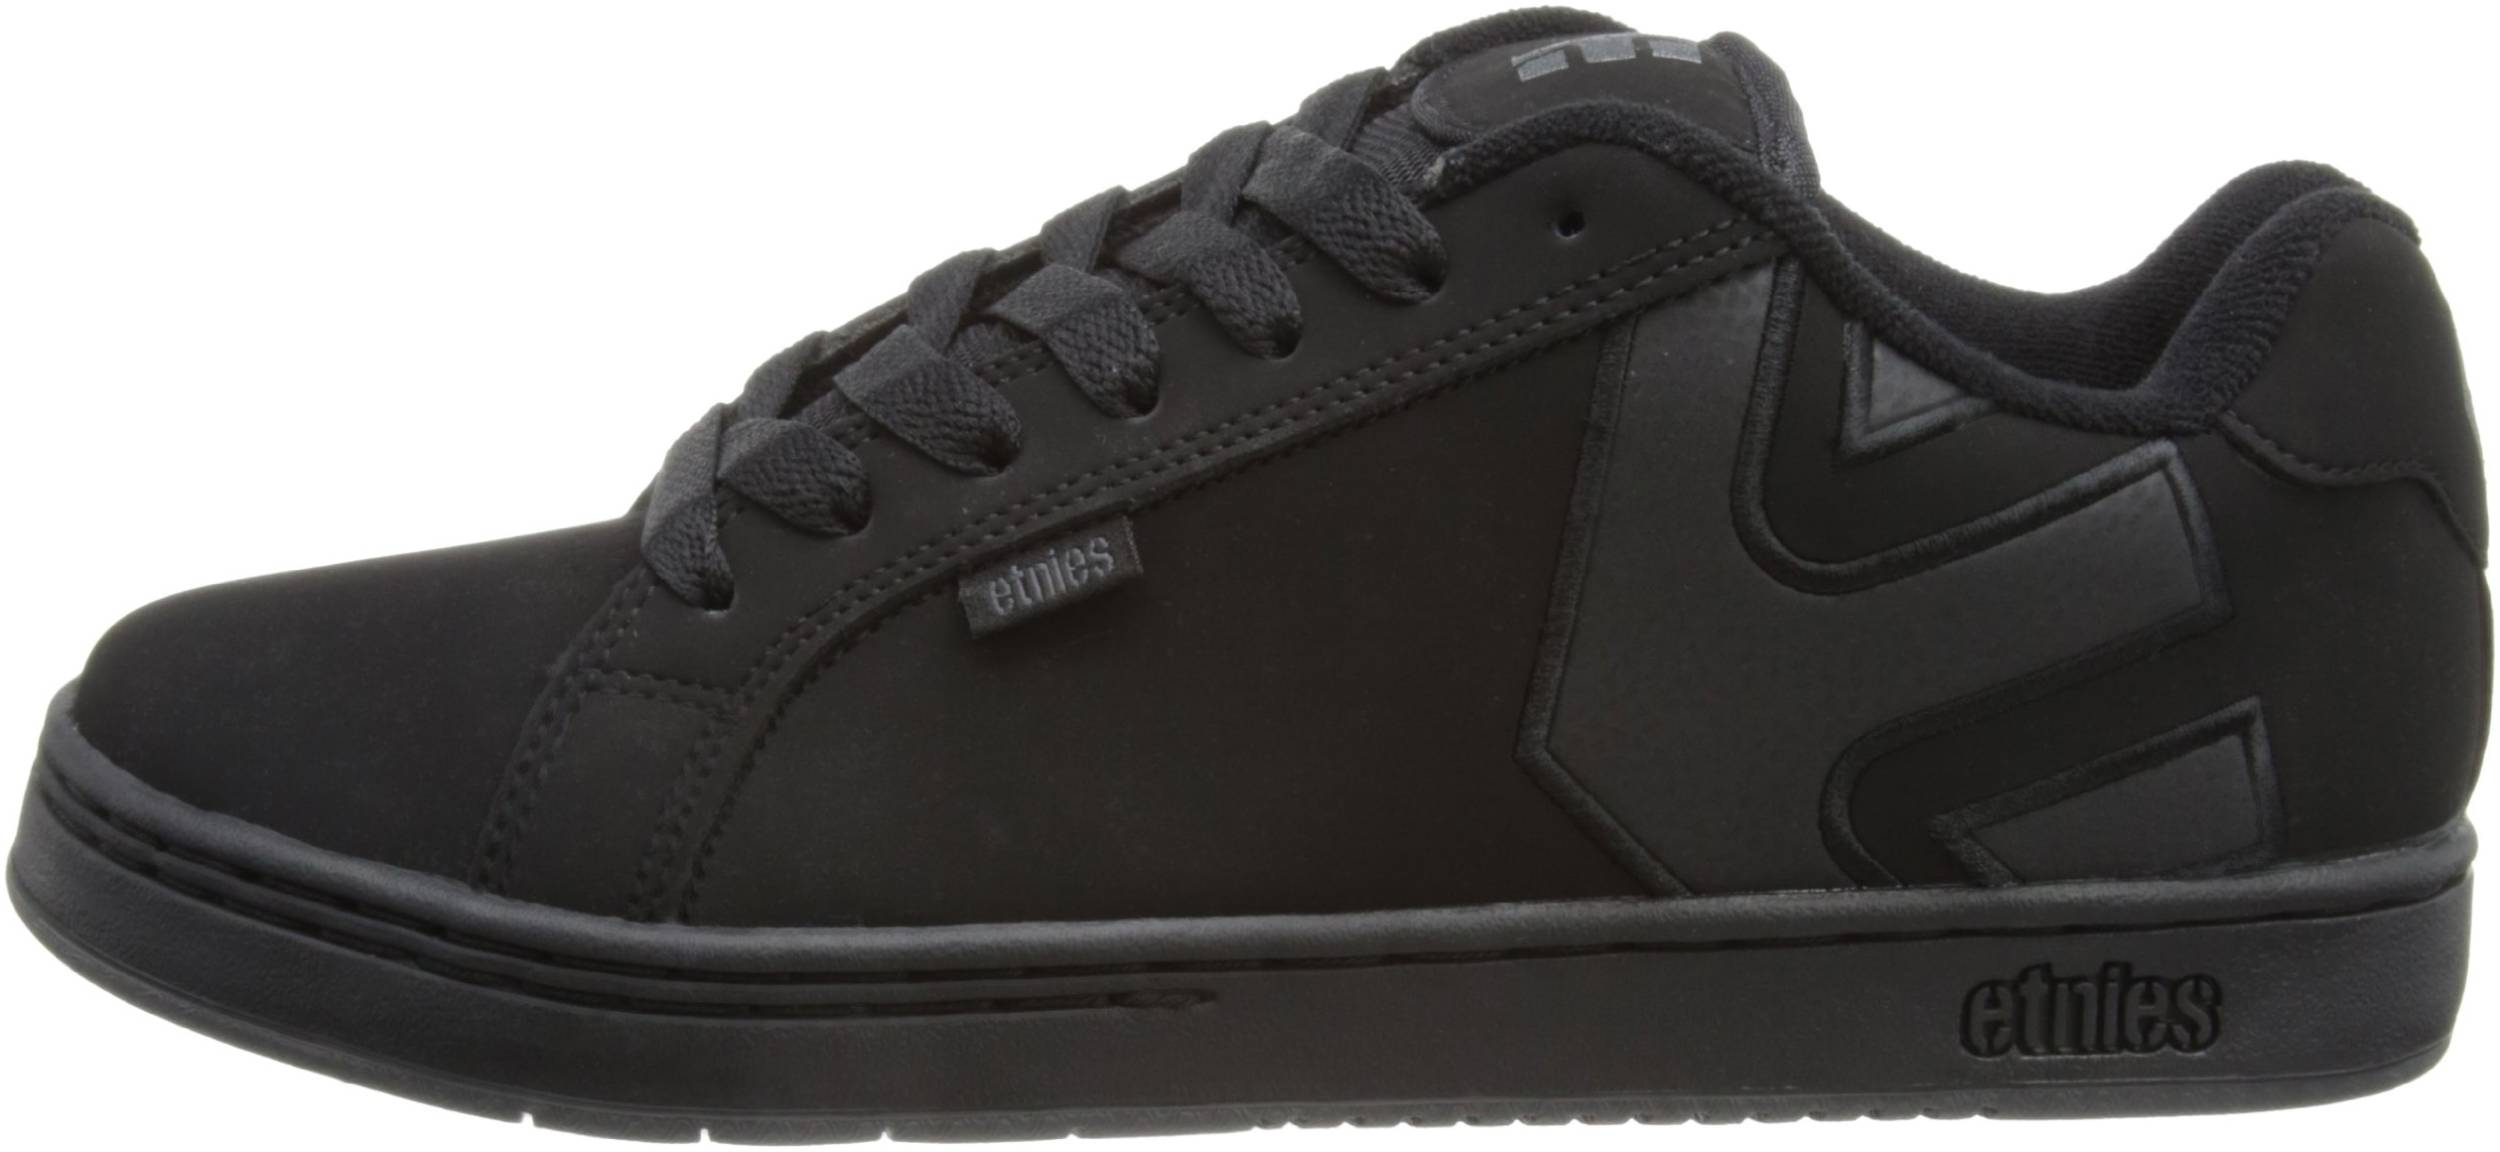 Only $37 + Review of Etnies Fader